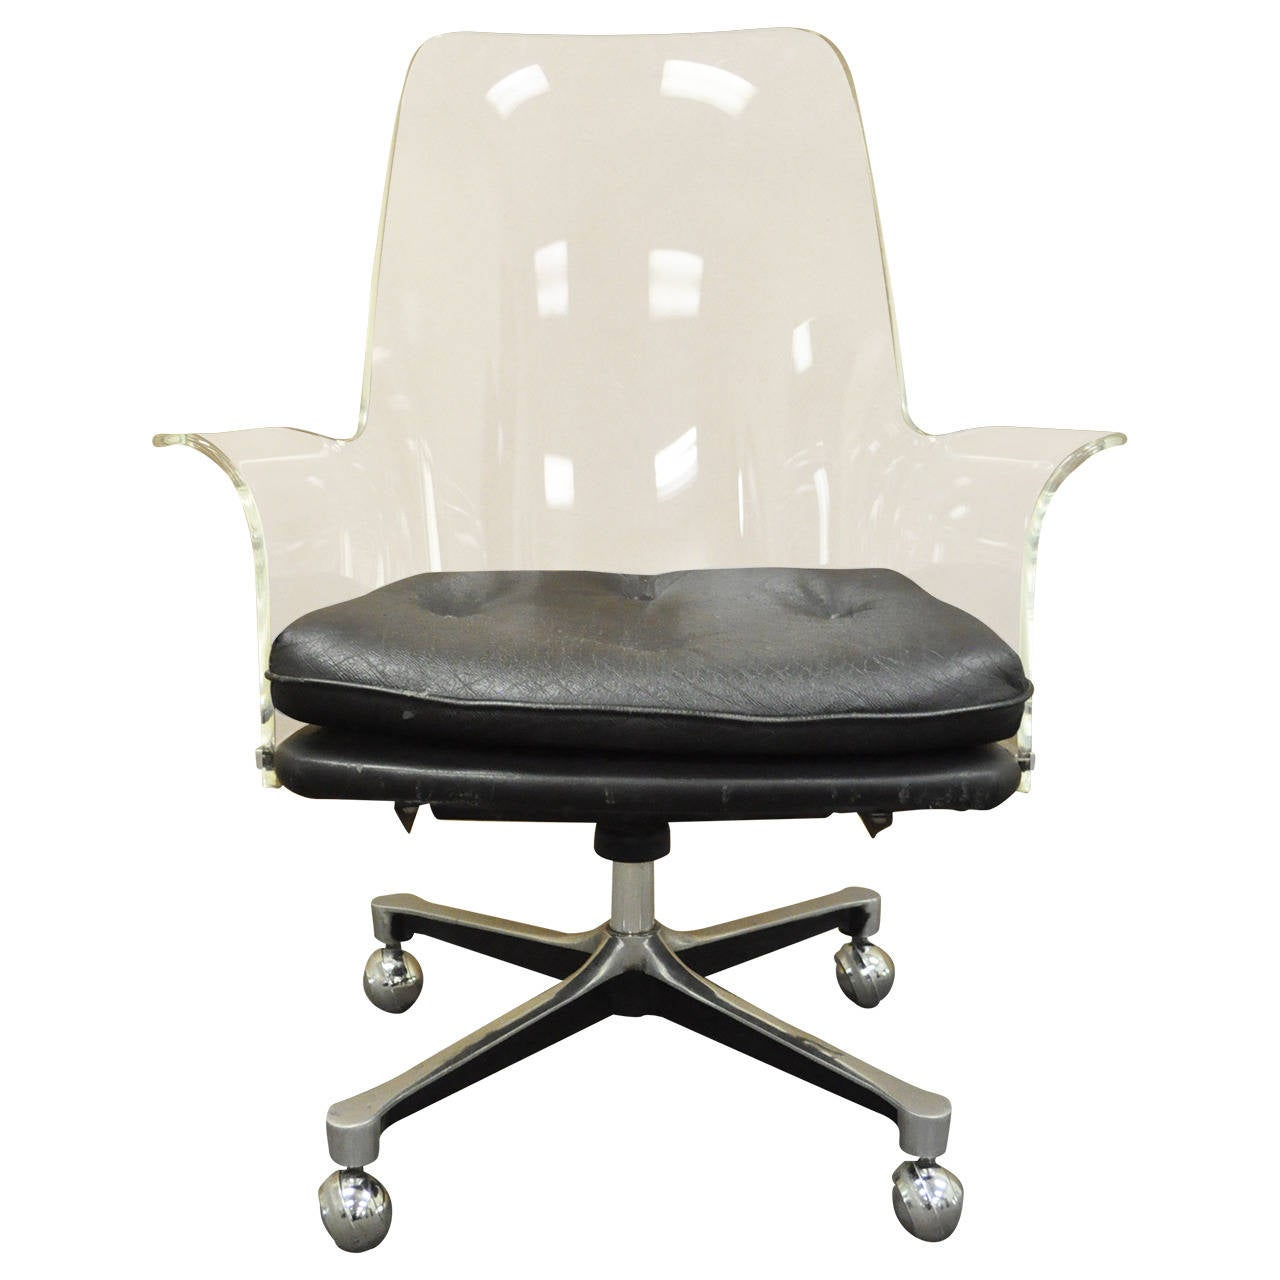 Acrylic Desk Chair 1960s Sculpted Lucite Swivel Desk Chair After Vladimir